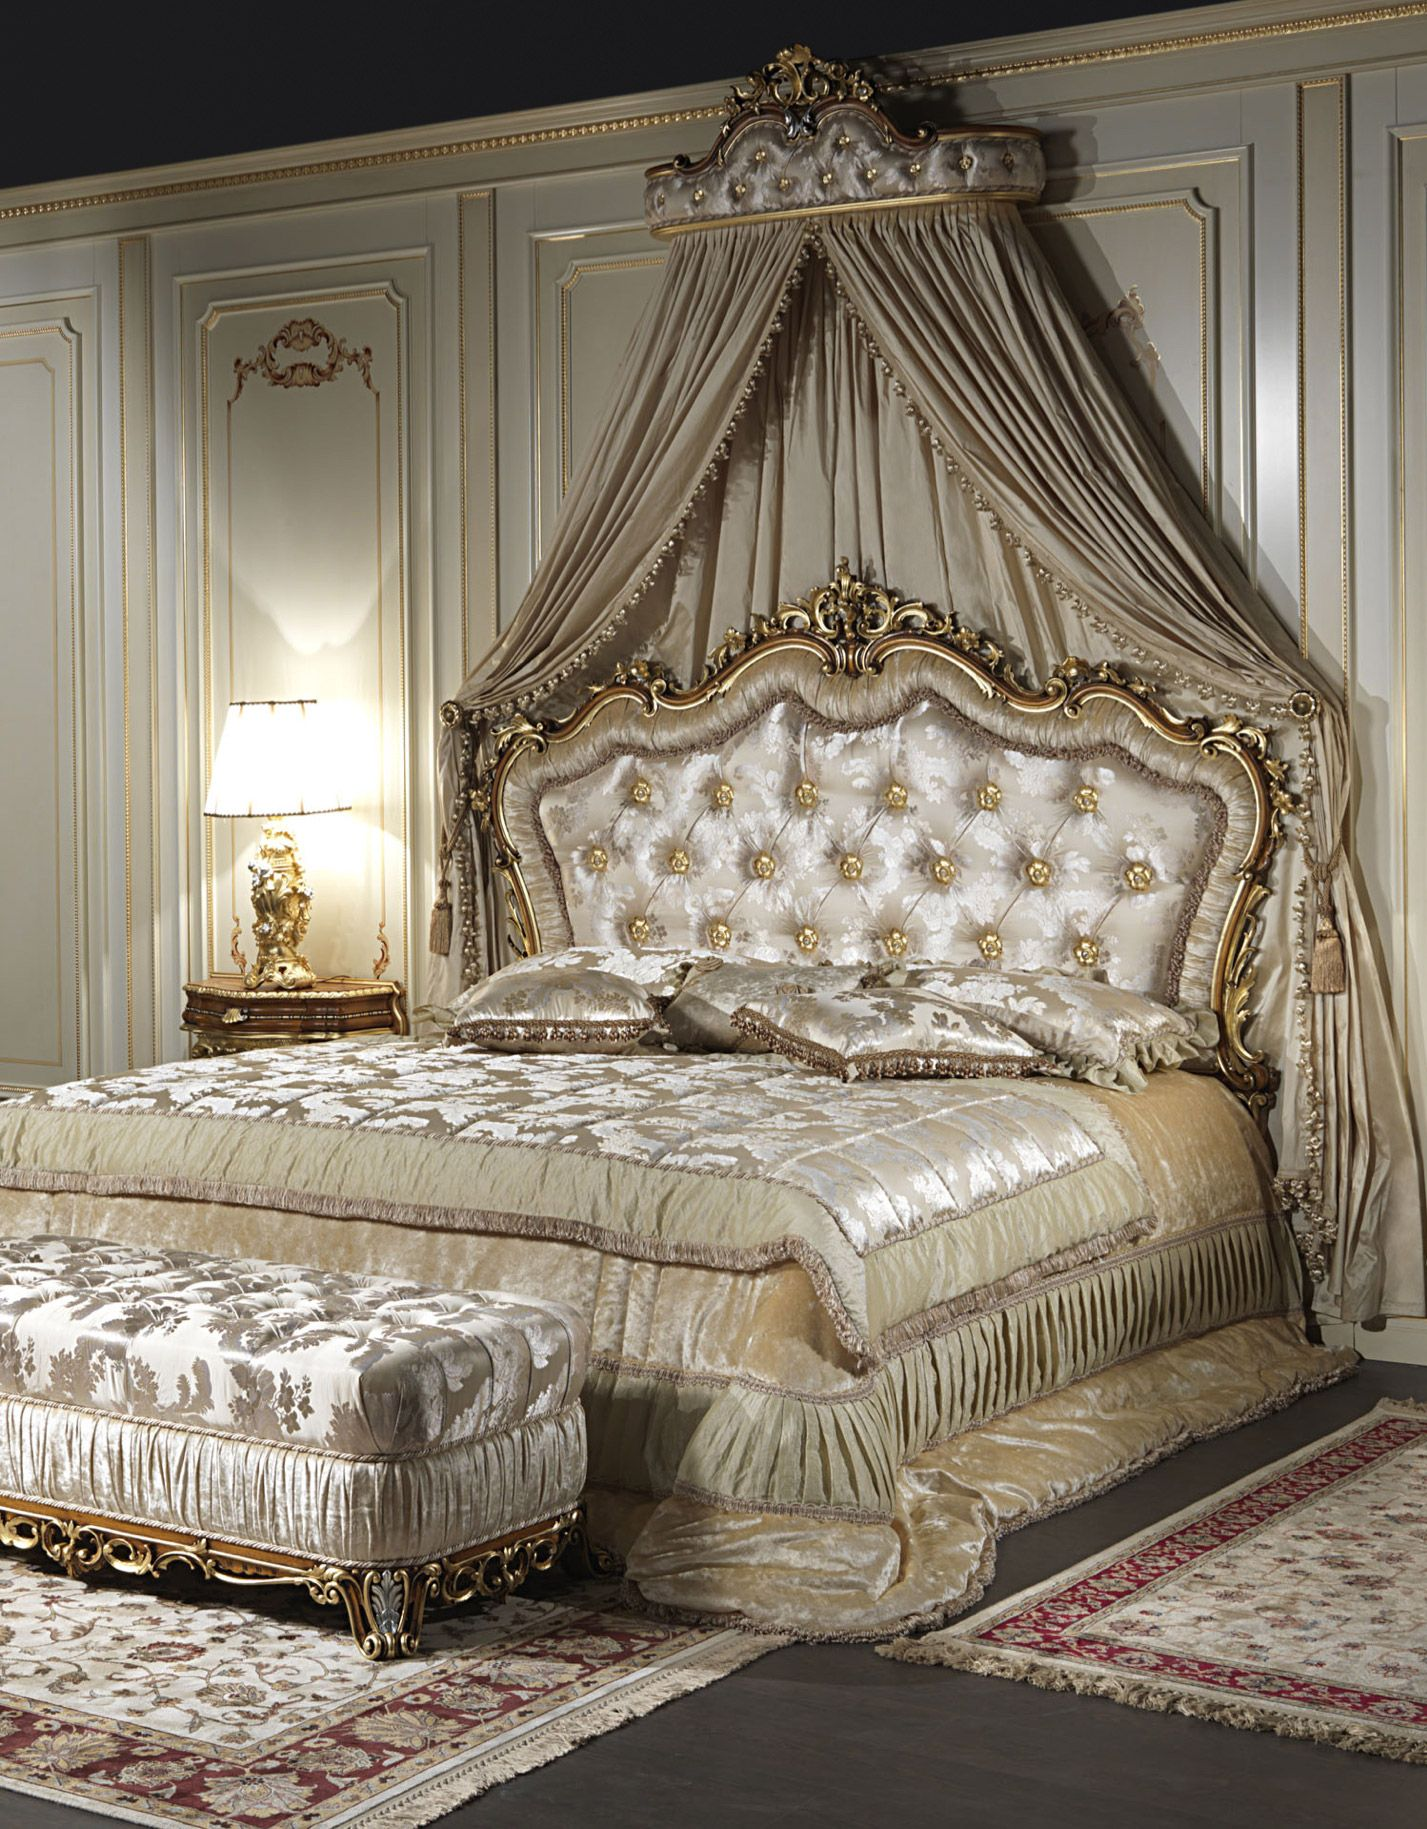 The classic double bed Baroque comes from the great